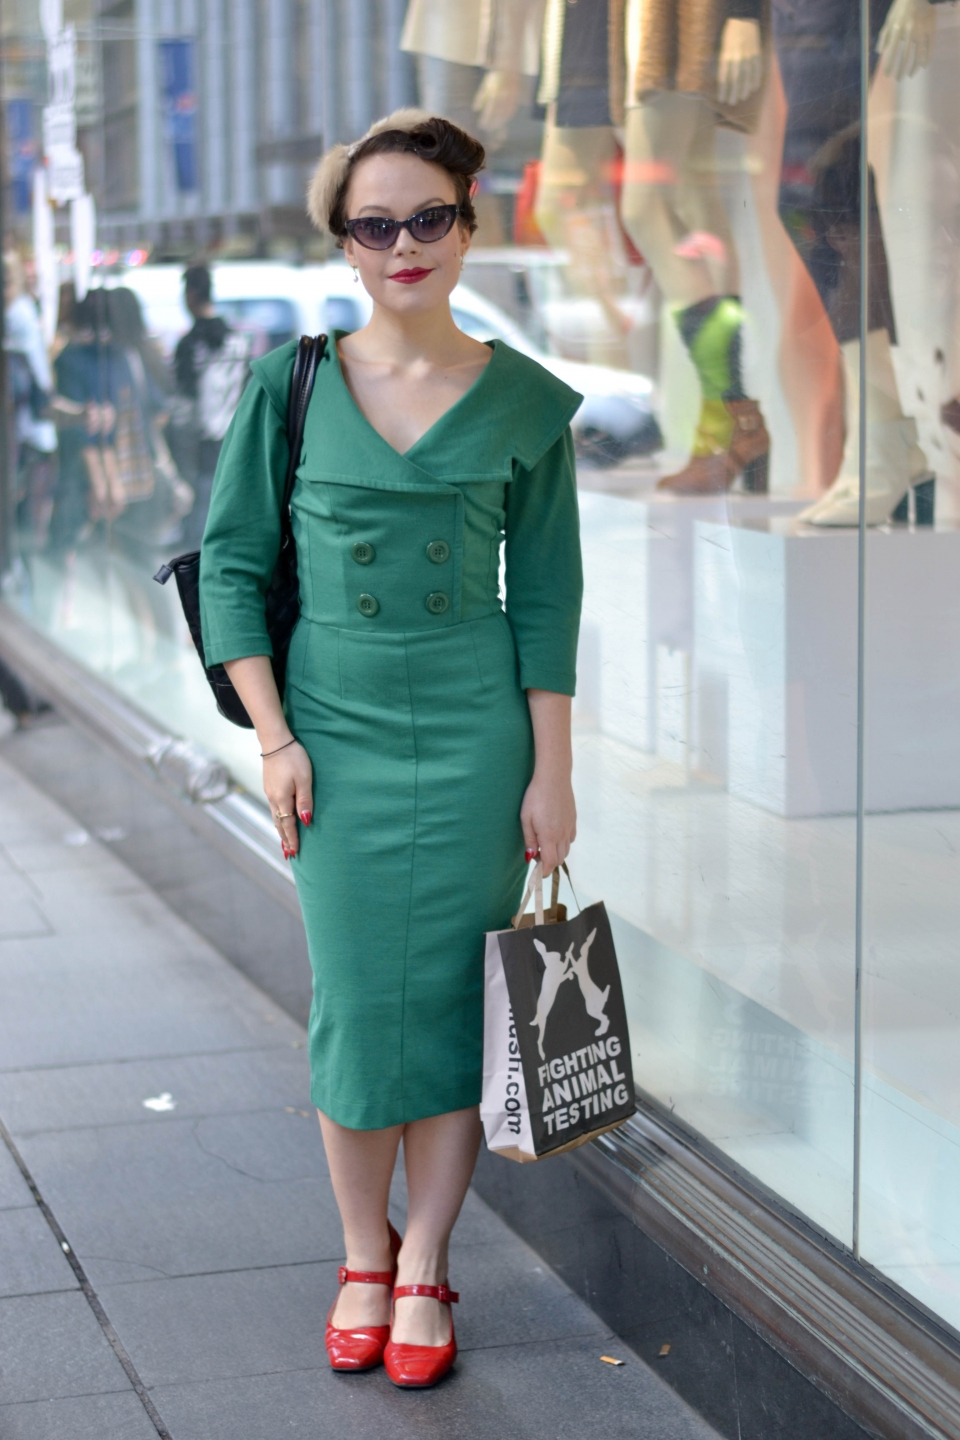 "NSW: Sarah Battle_Darling De Vine, event manager,George St, Sydney. ""My style's 1950's femme fatale."" Photo: alice Scriberras"